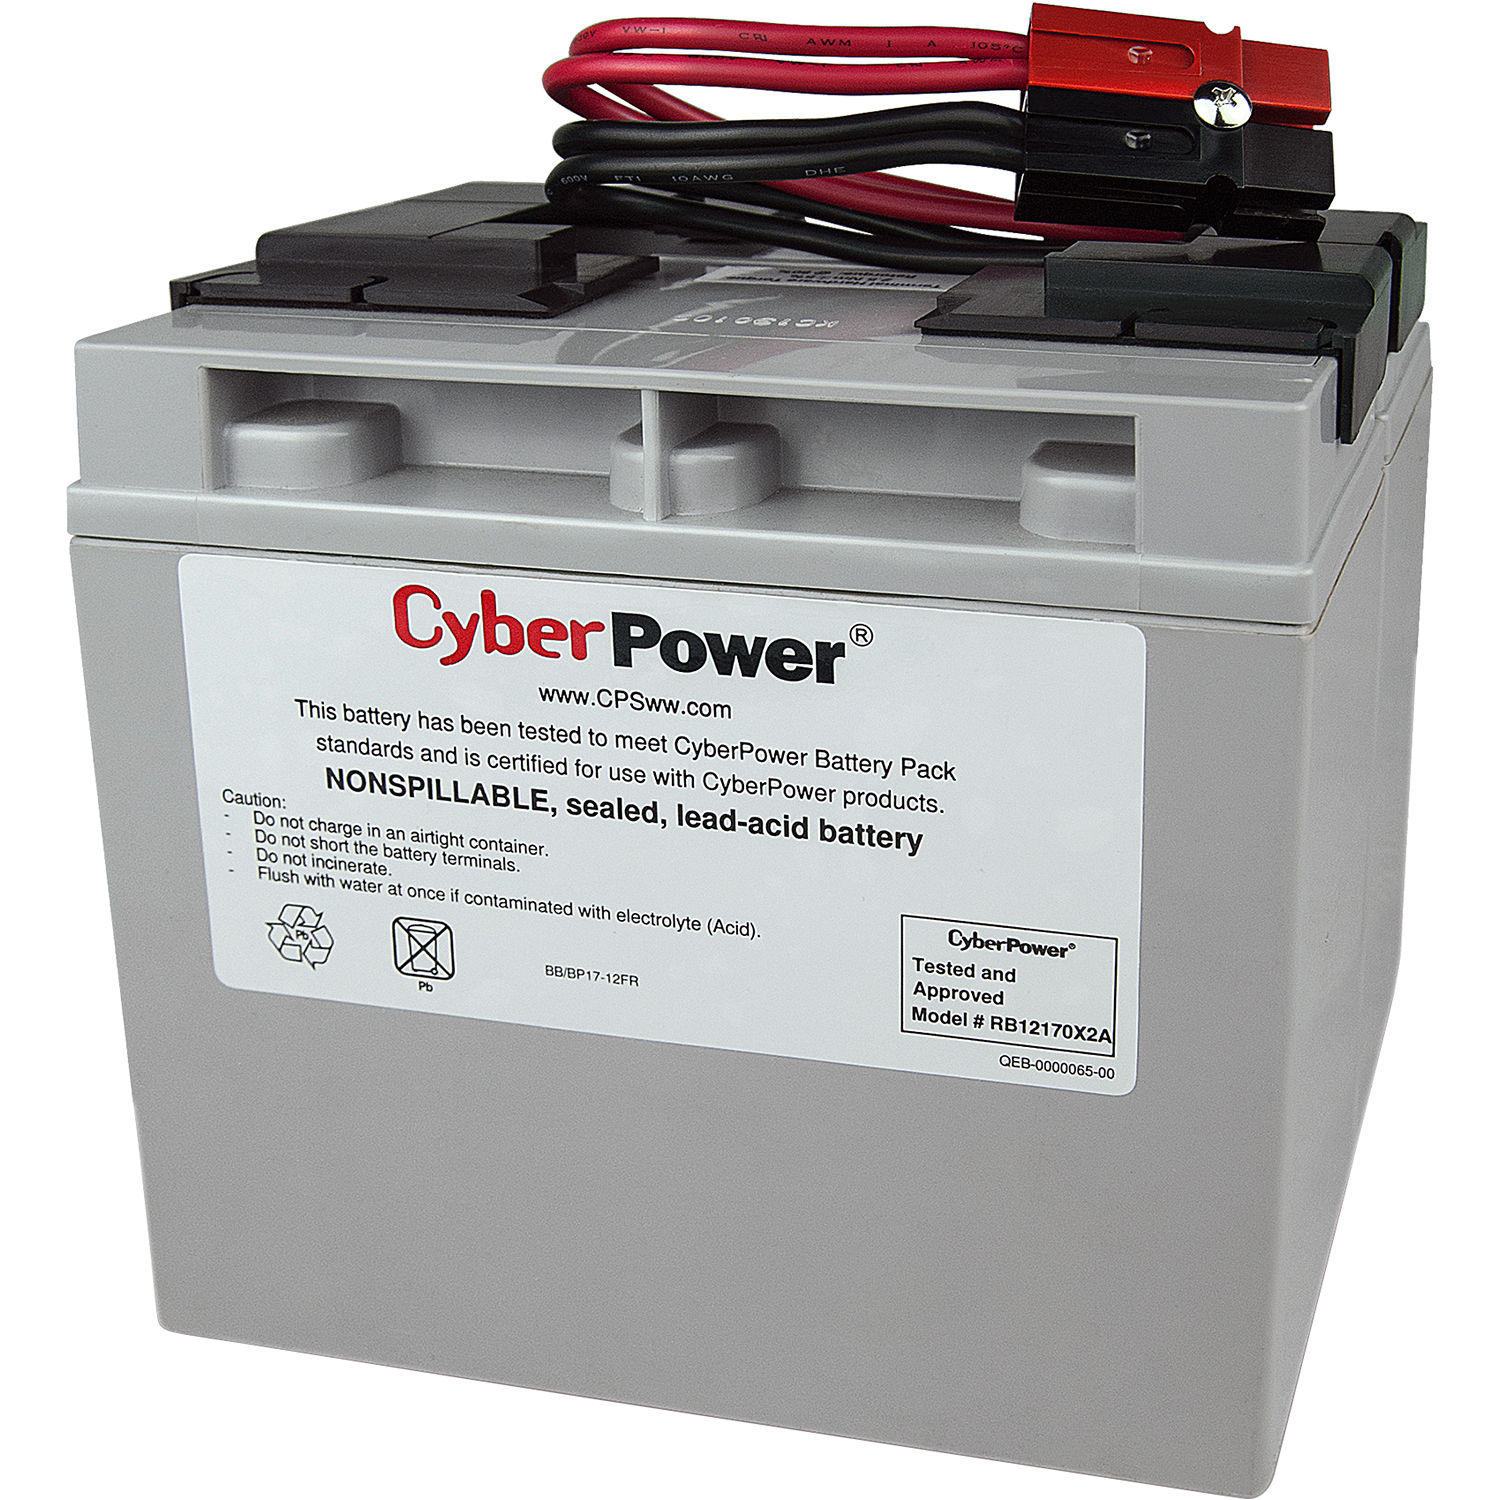 cyberpower replacement battery cartridge rb12170x2a b h photo. Black Bedroom Furniture Sets. Home Design Ideas